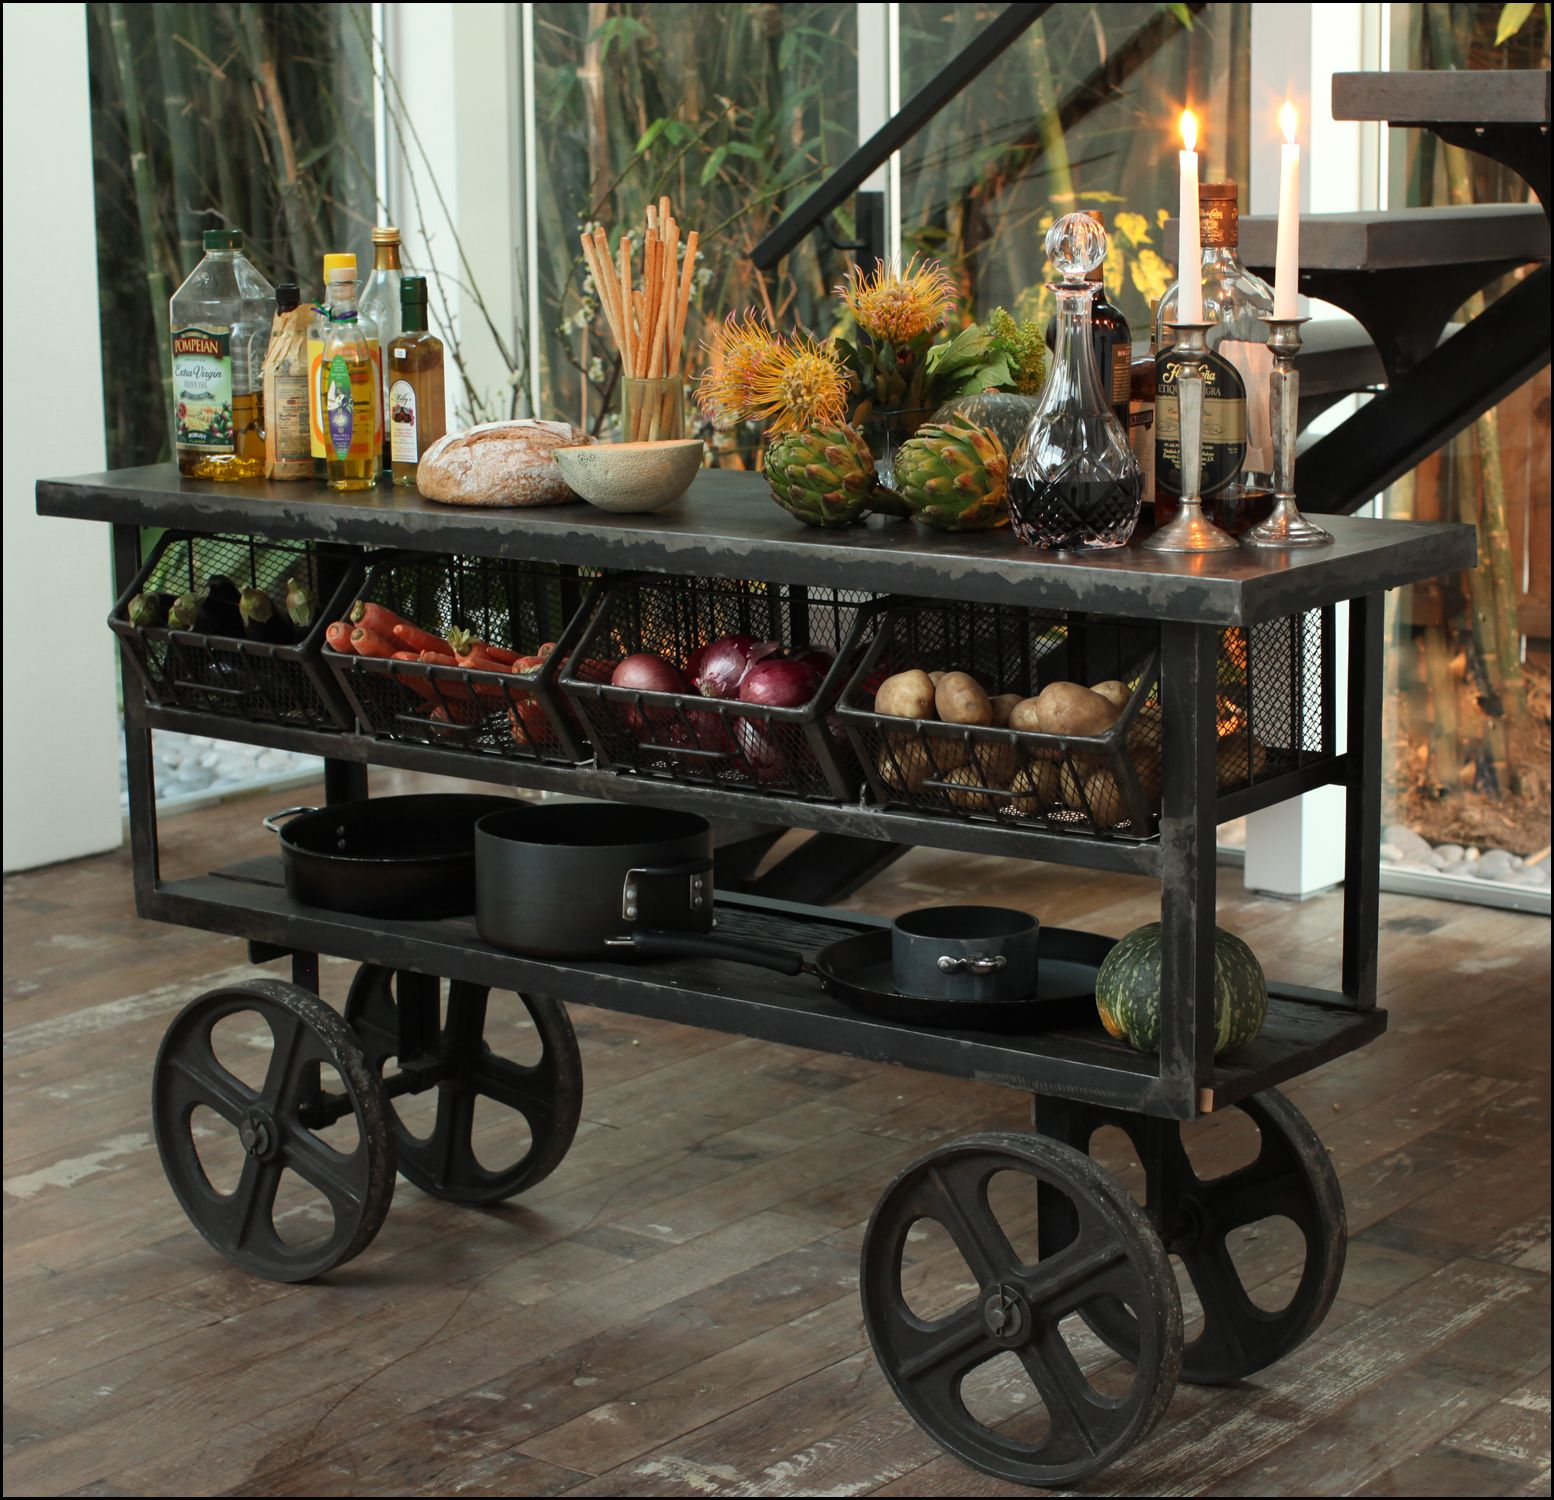 Rustic Kitchen Trolley Cart, metal and wood kitchen trolley cart www.Taramundifurniture.com